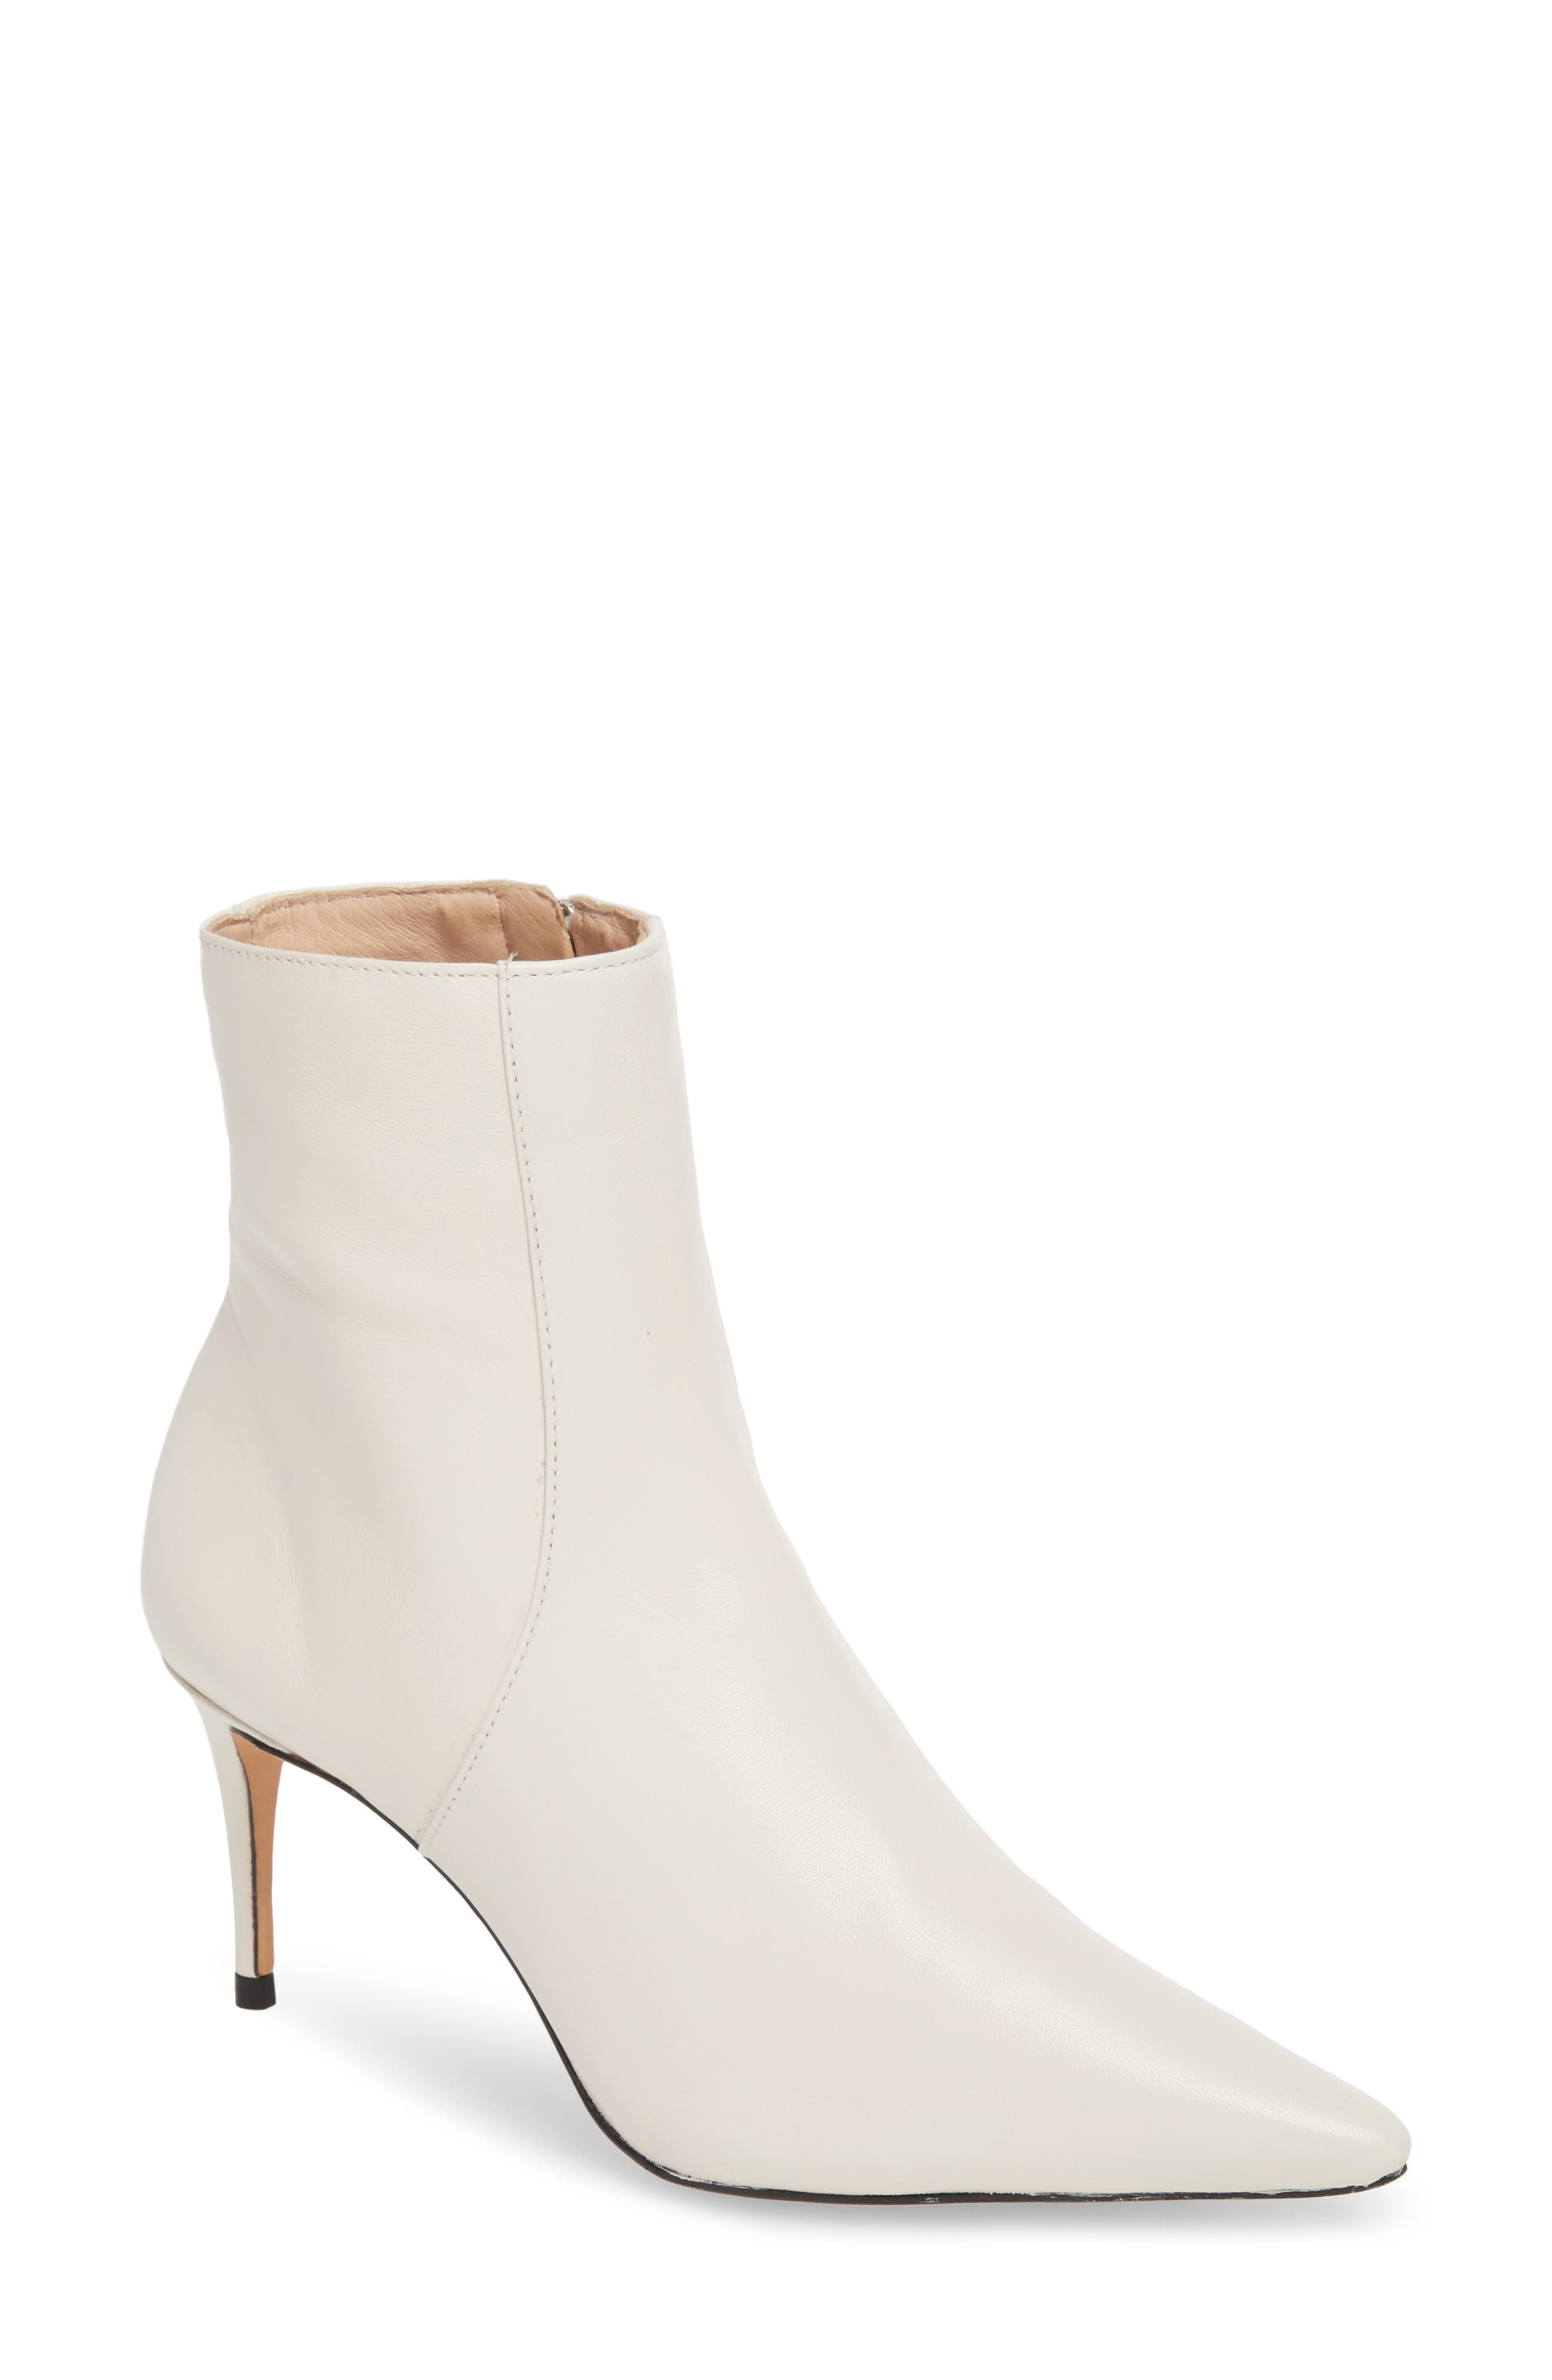 A pointy-toe bootie made with a cushioned footbed is lofted by a svelte heel. Style Name: Schutz Bette Bootie (Women). Style Number: 5430274 5. Available in stores.